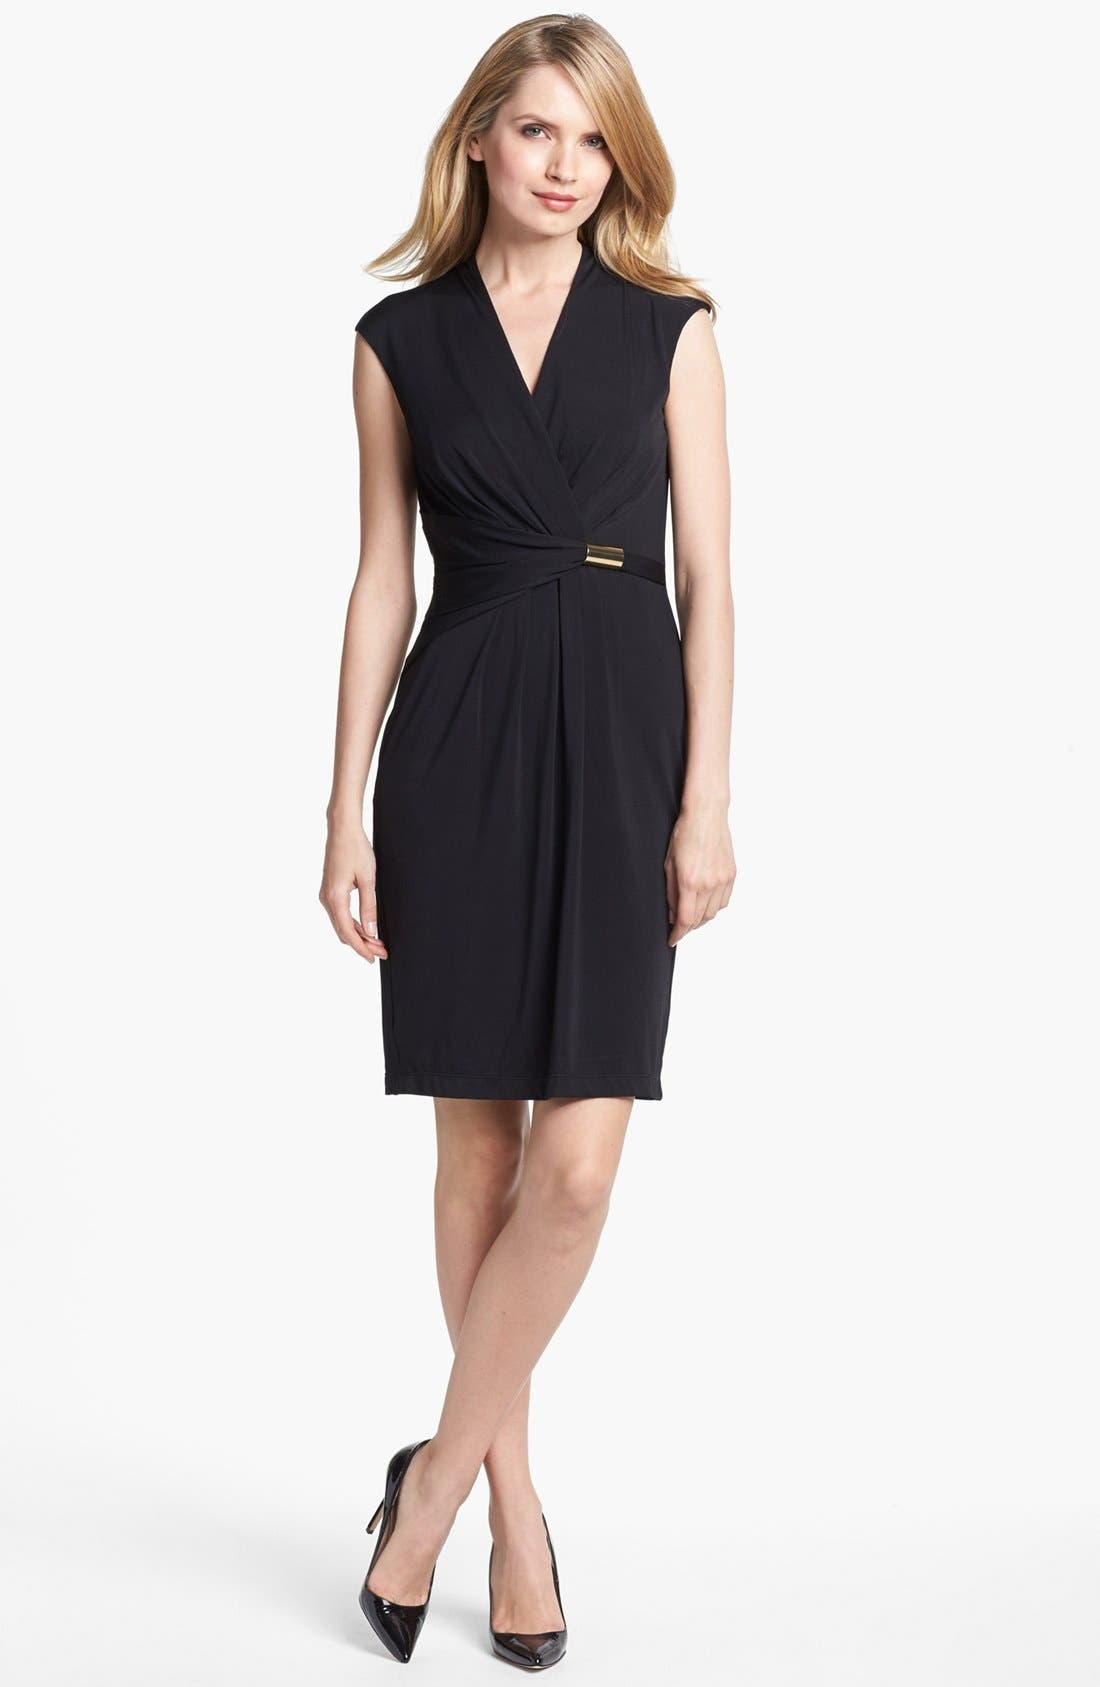 ELLEN TRACY, Ruched Jersey Sheath Dress, Main thumbnail 1, color, 001